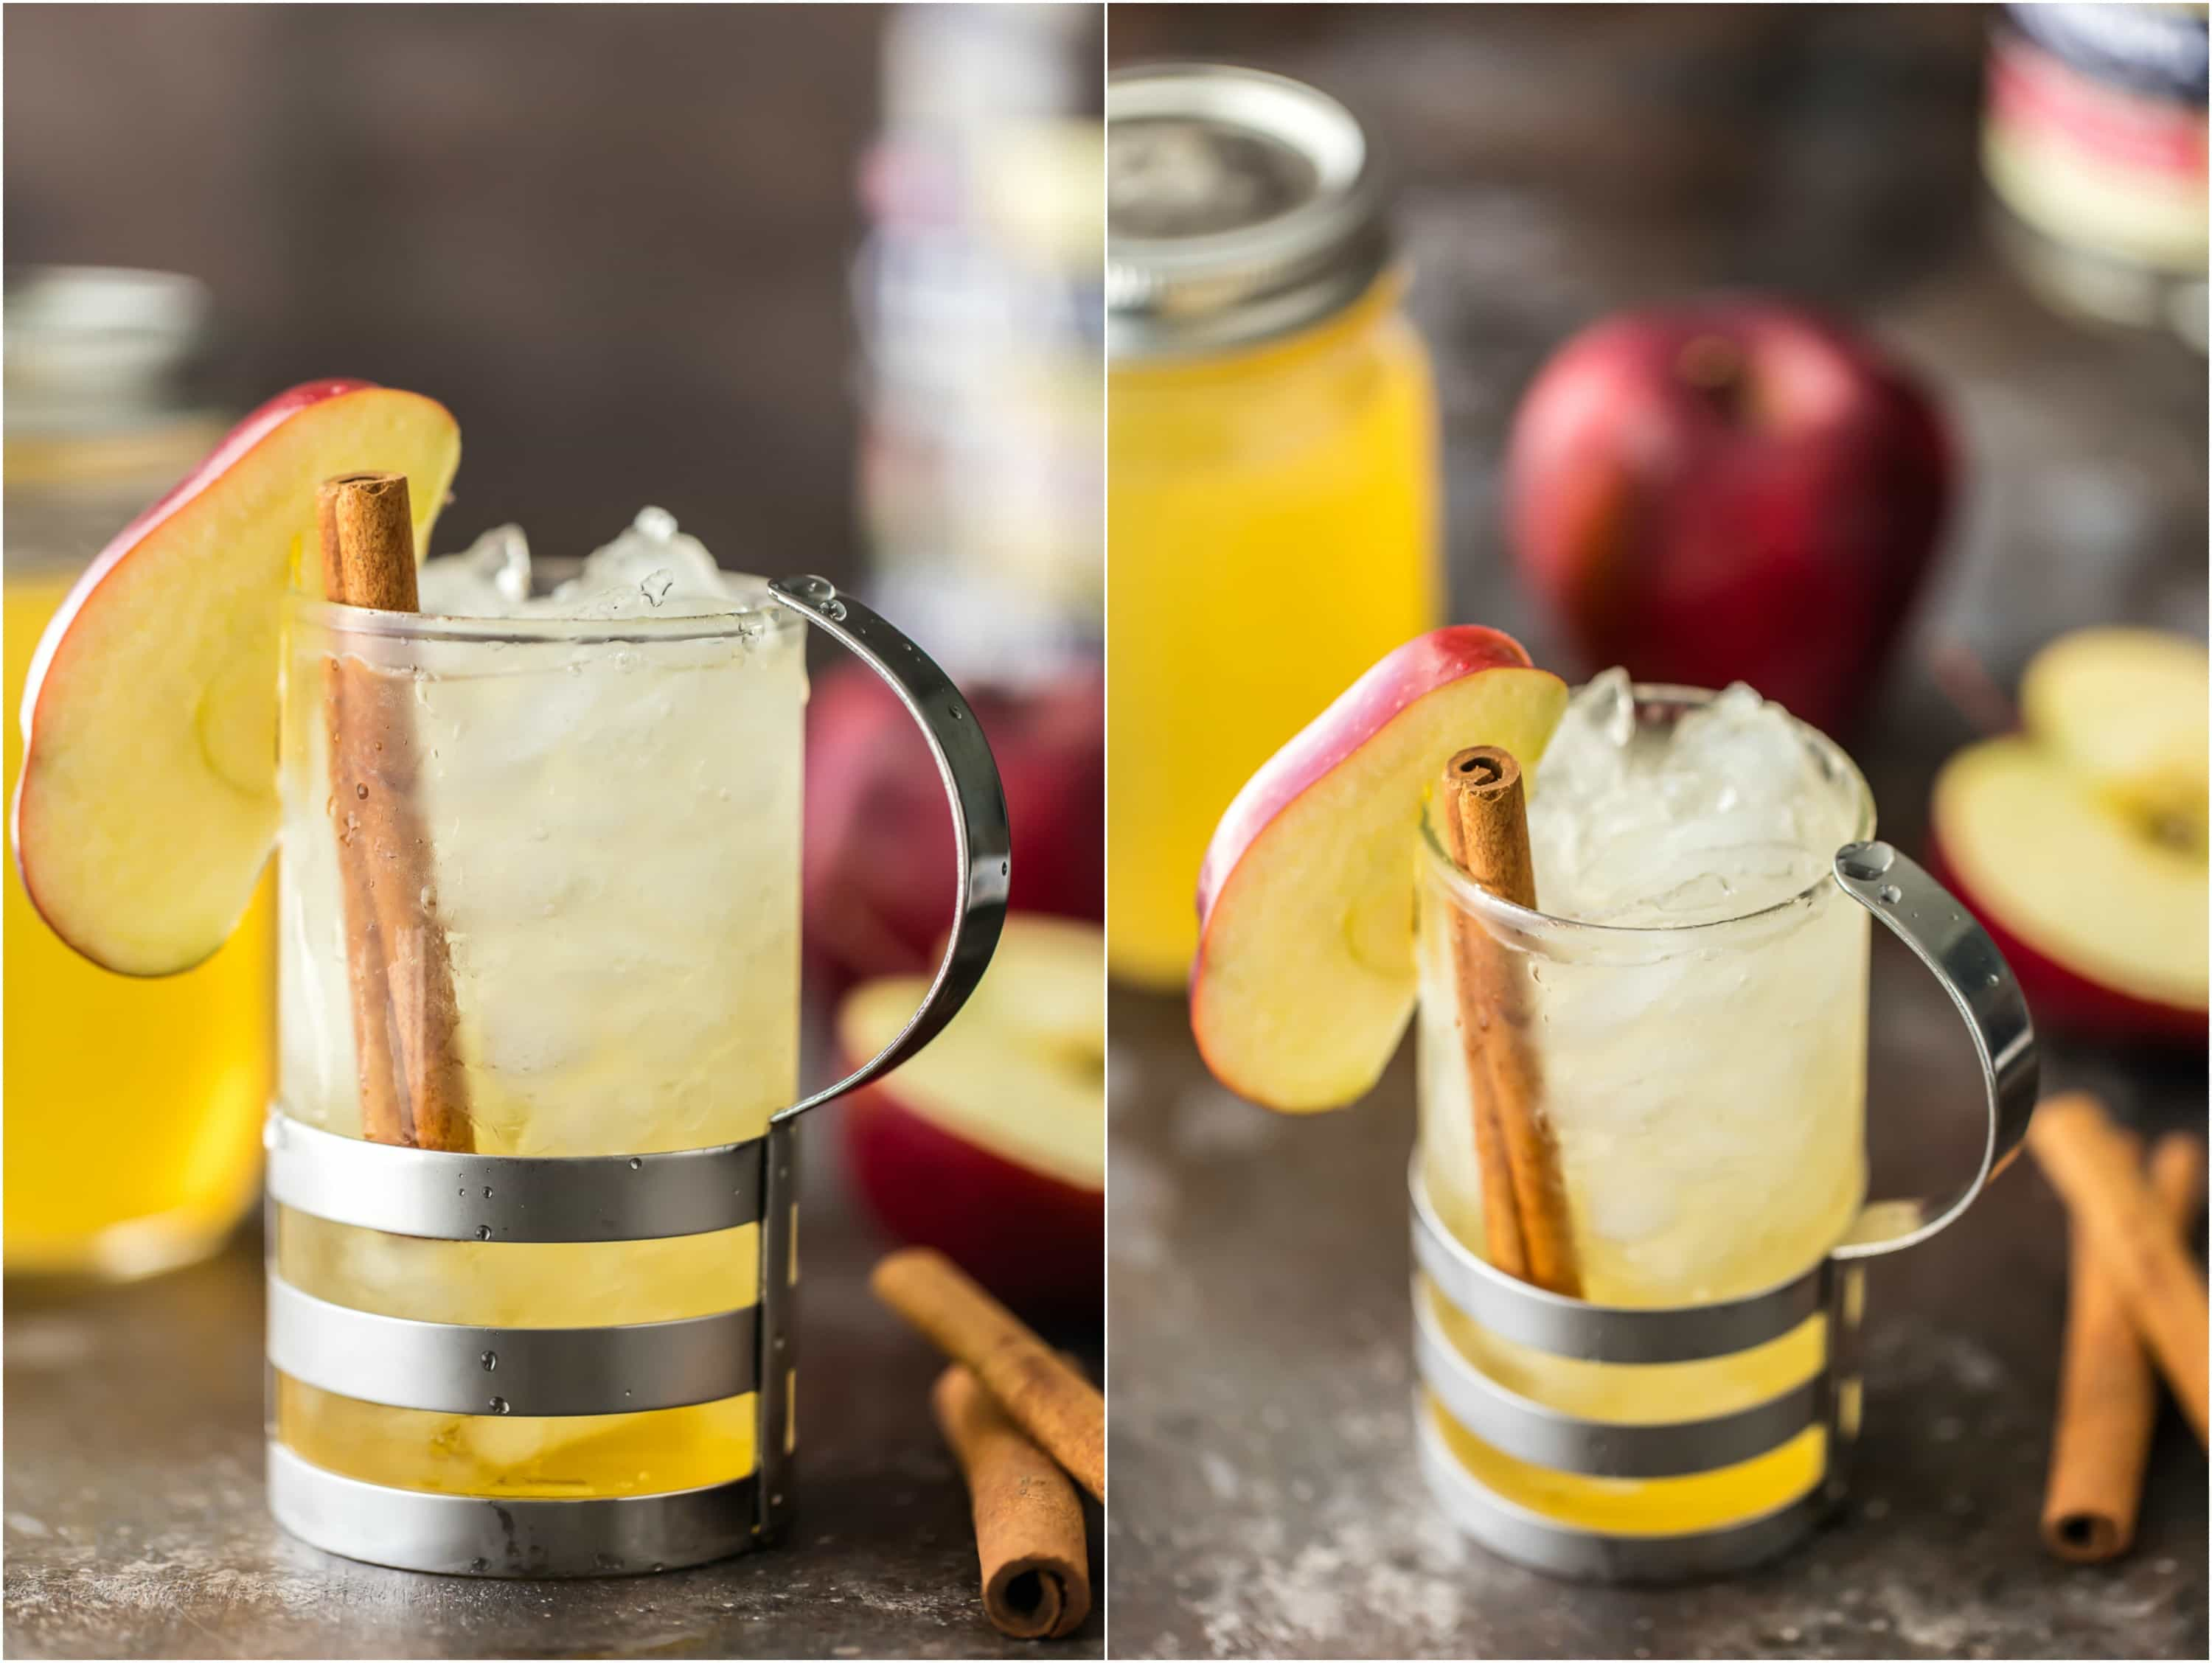 Homemade Apple Pie Vodka is an easy gift idea for Fall! Simple Apple Pie Vodka makes the best fall cocktail with Apple Pie Spritzer! Apple Pie Vodka, Apple Cider, and Club Soda! SO DELISH!